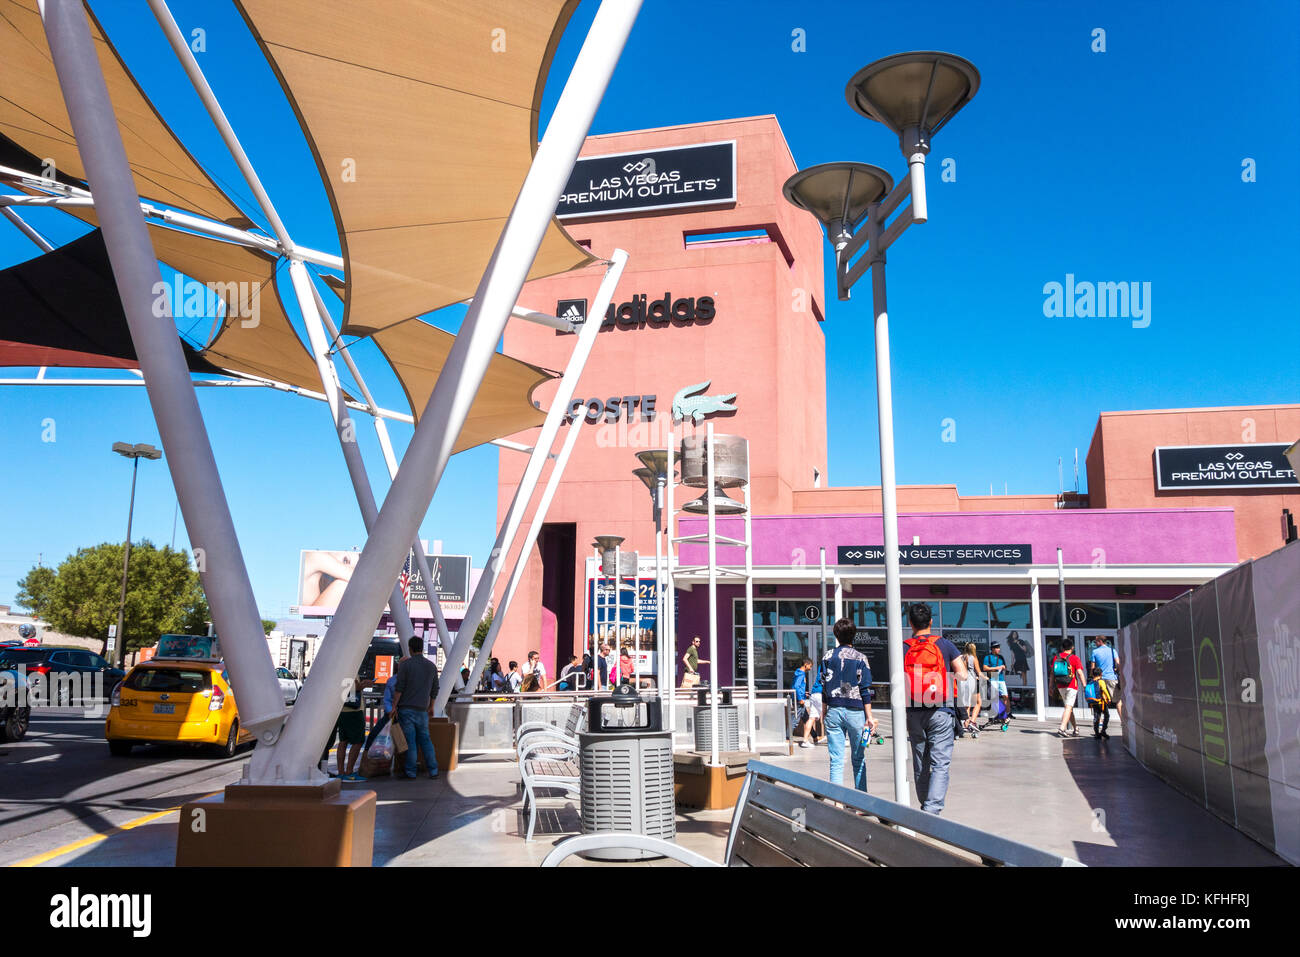 Las Vegas Premium Outlets North Shopping Mall - Stock Image